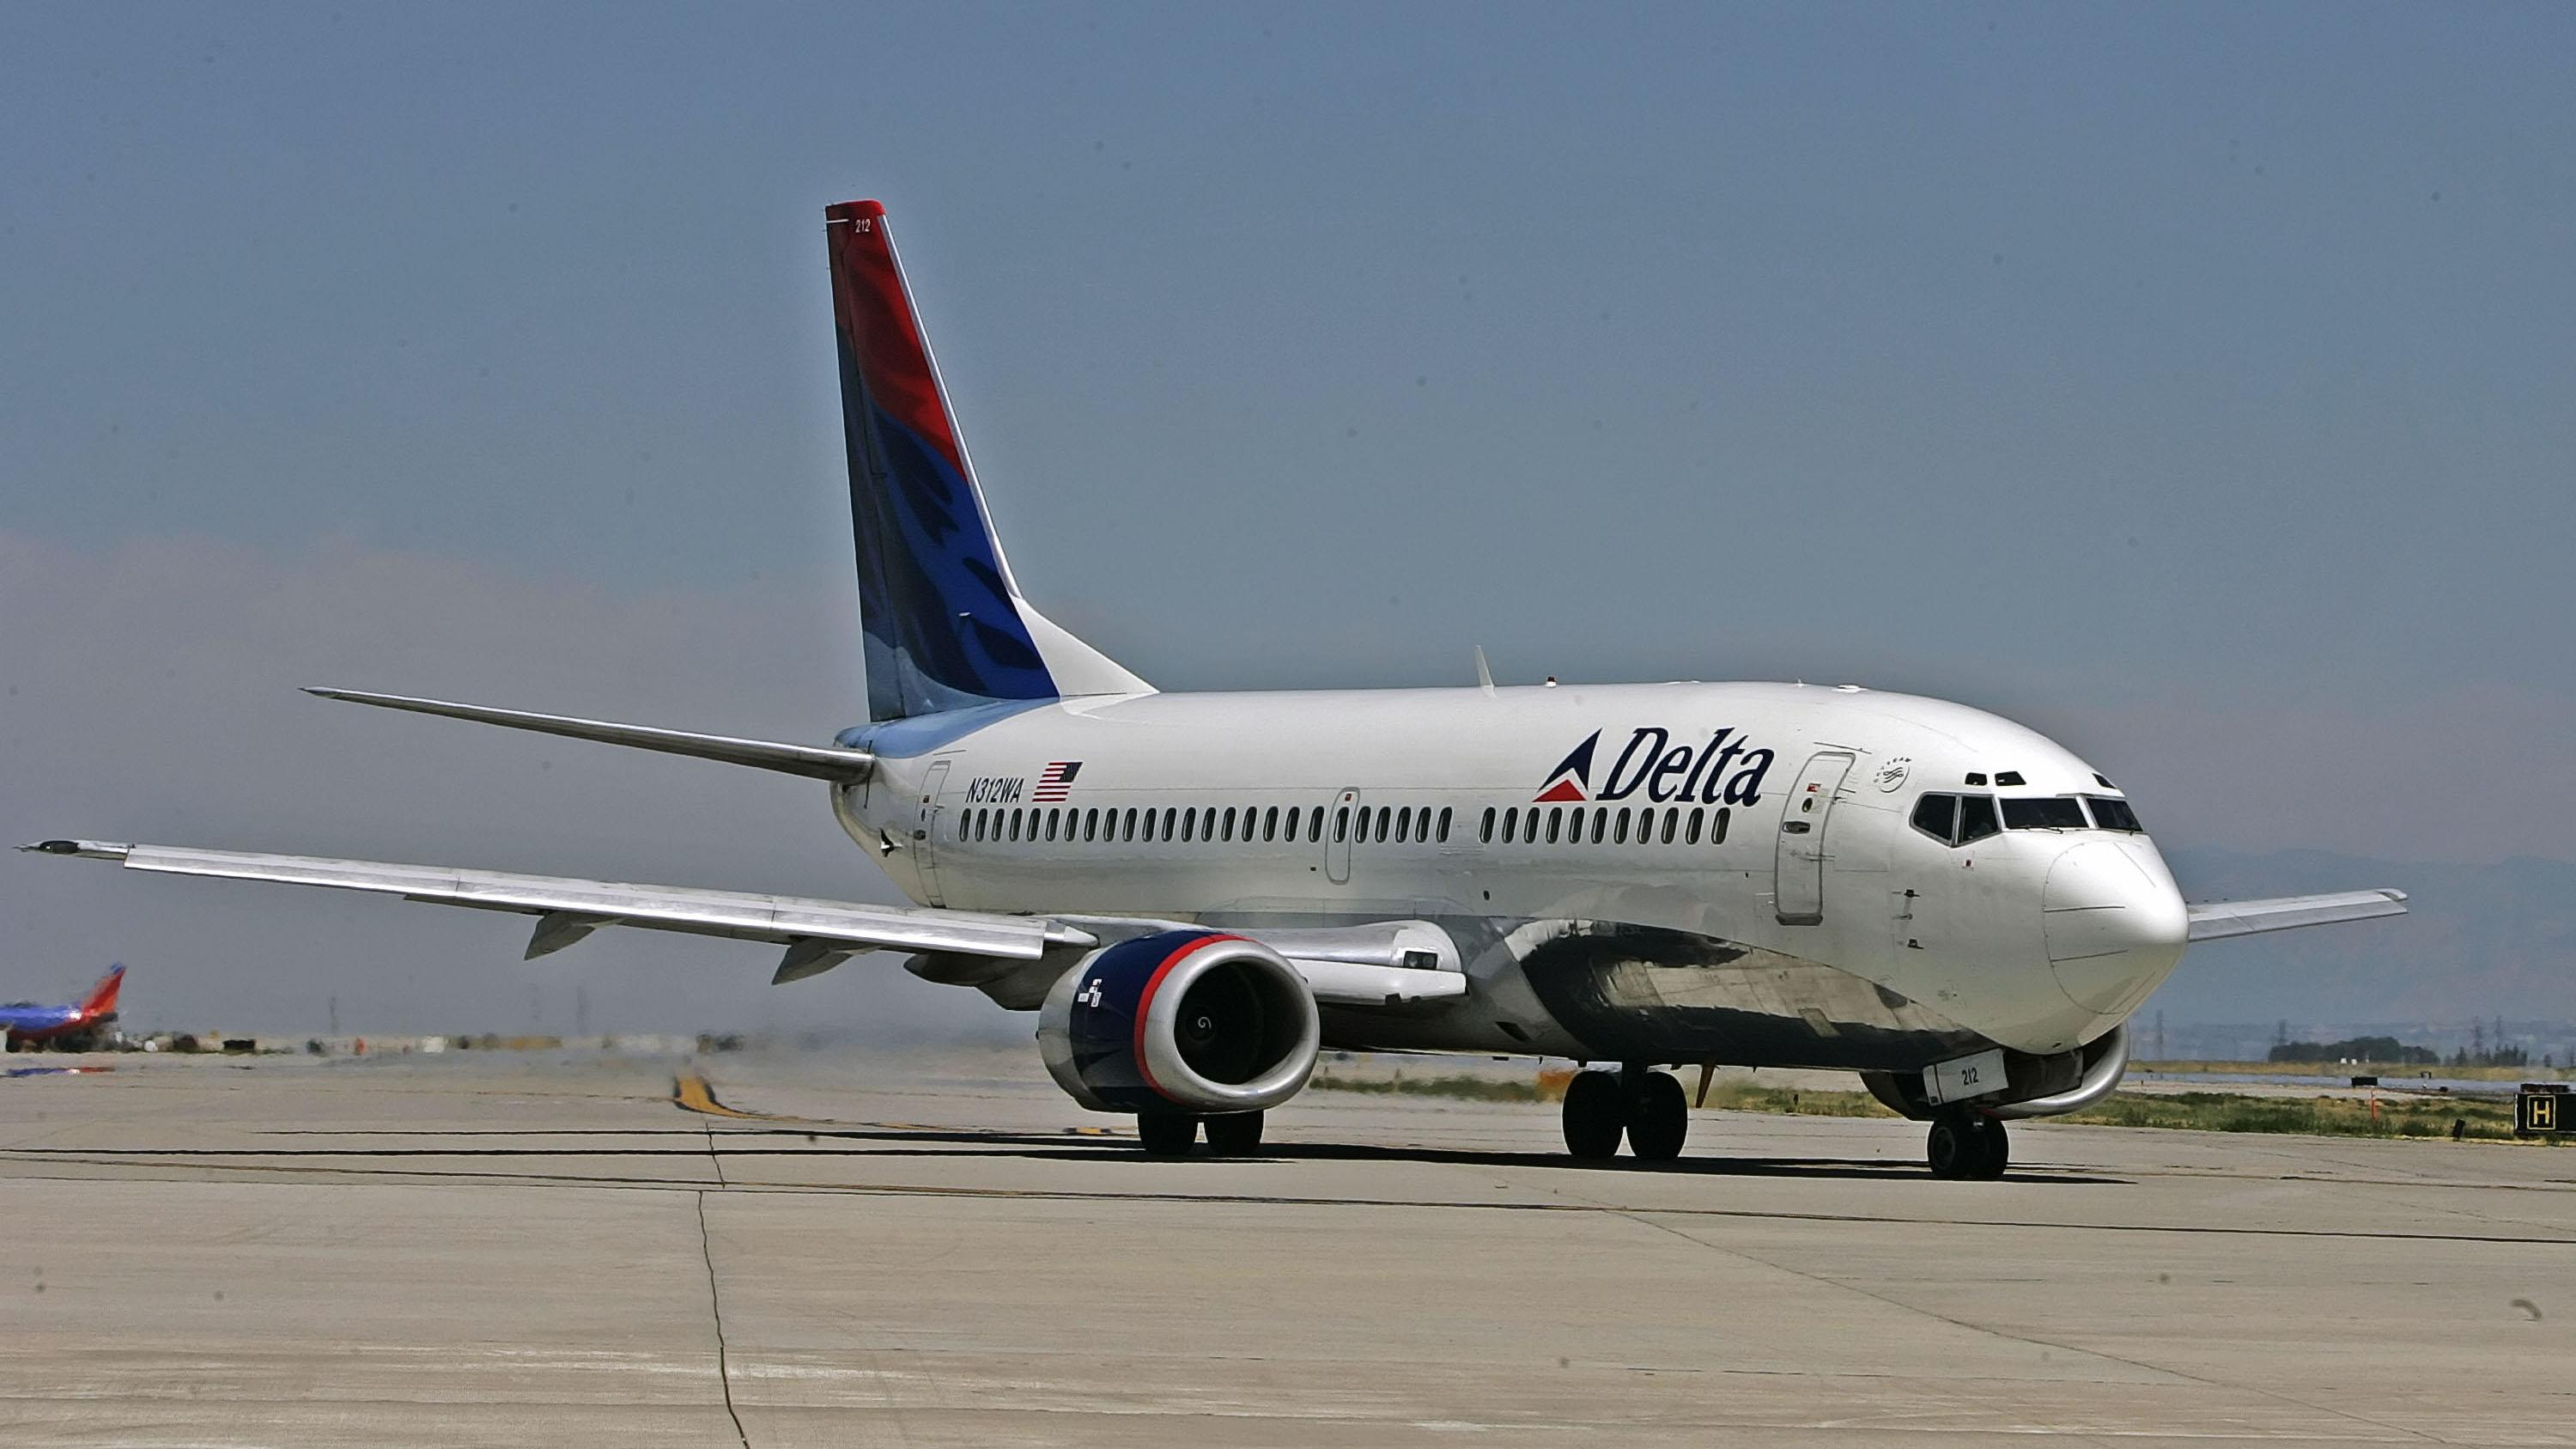 Woman fined £ 500 for Rescuing Complimentary Delta Air Lines snack